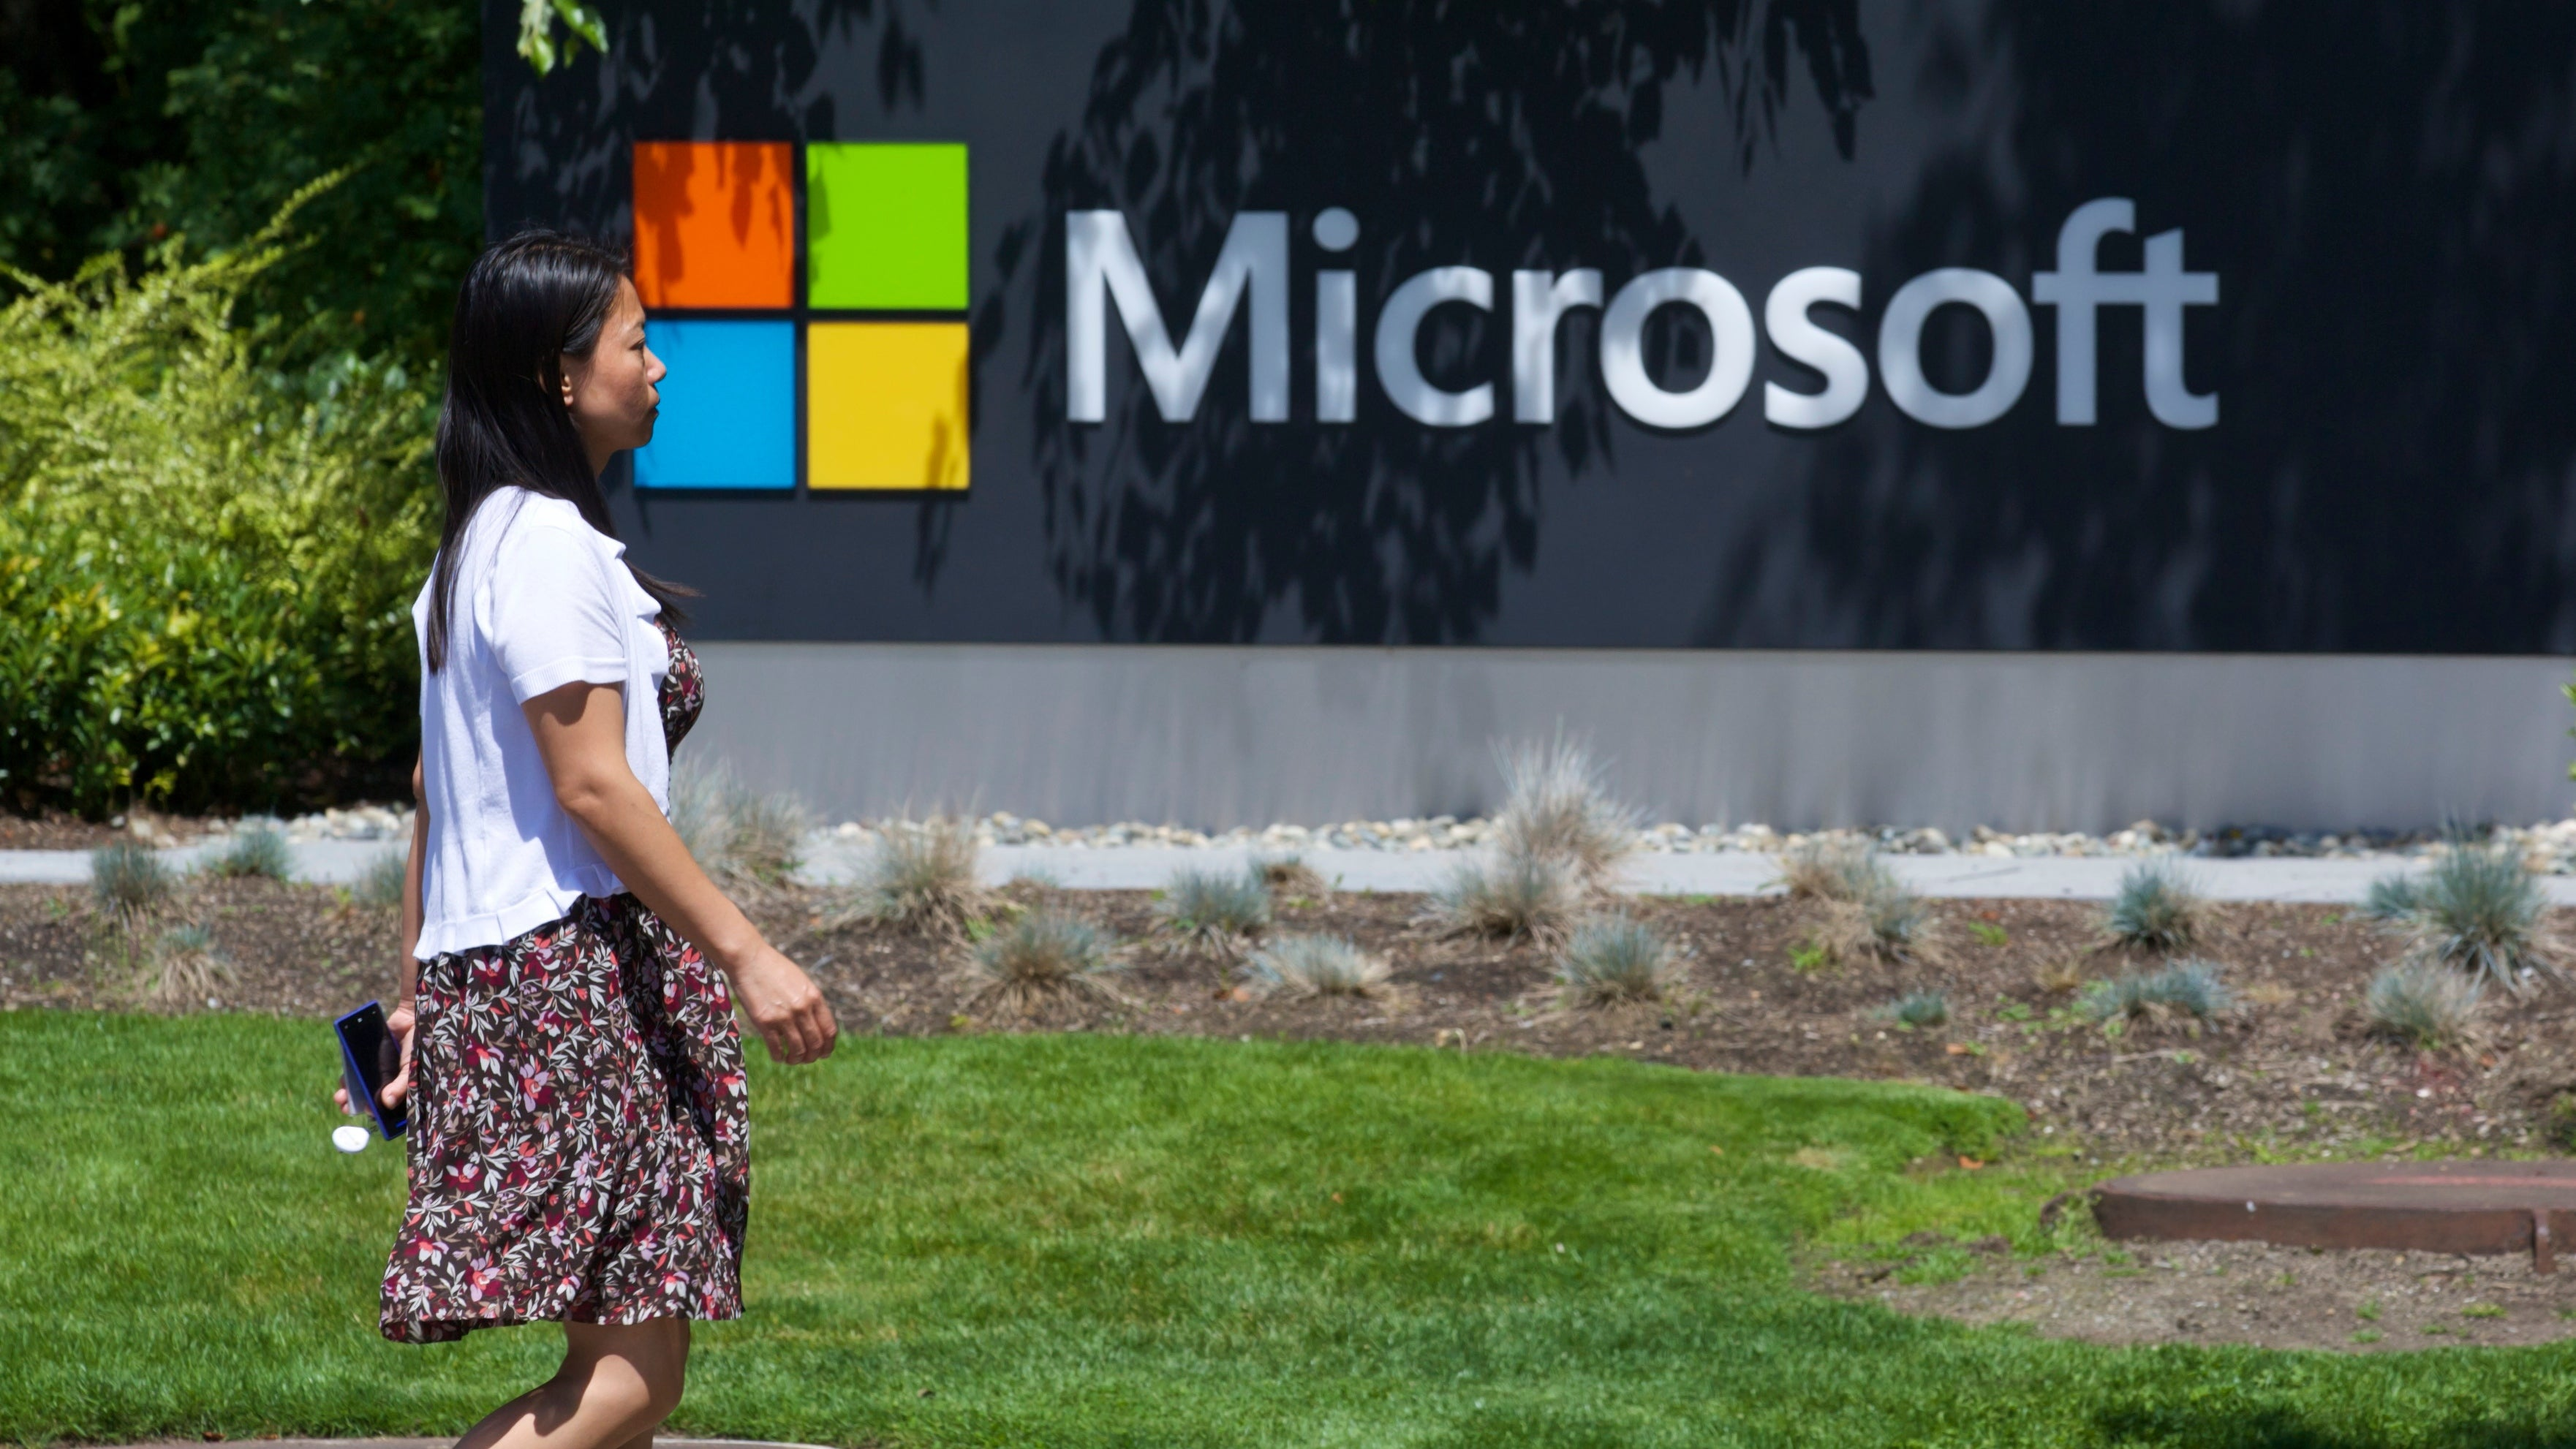 Microsoft Upheld Less Than 1 Per Cent Of Gender Discrimination Complaints By Female Employees, Court Documents Say